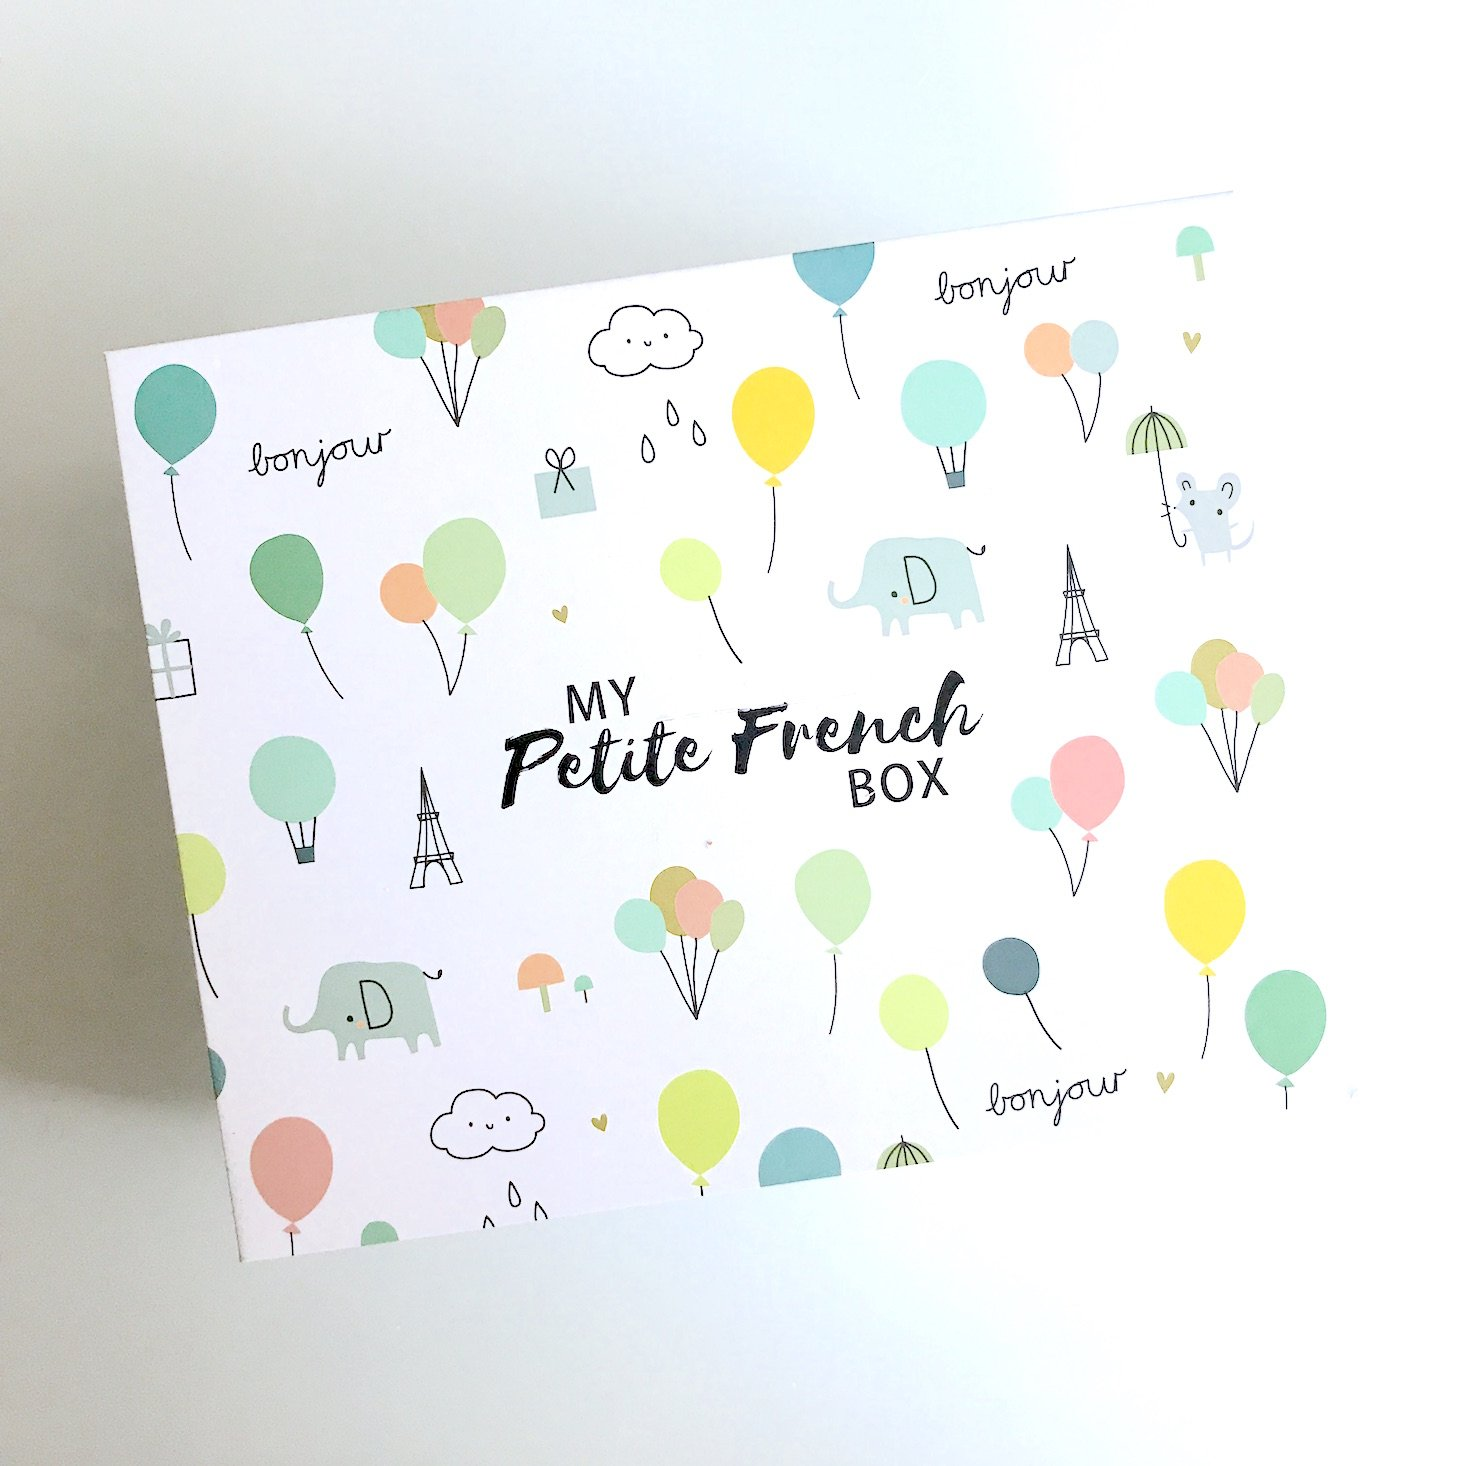 My Petite French Box Kid's Subscription Review + Coupon – February 2018